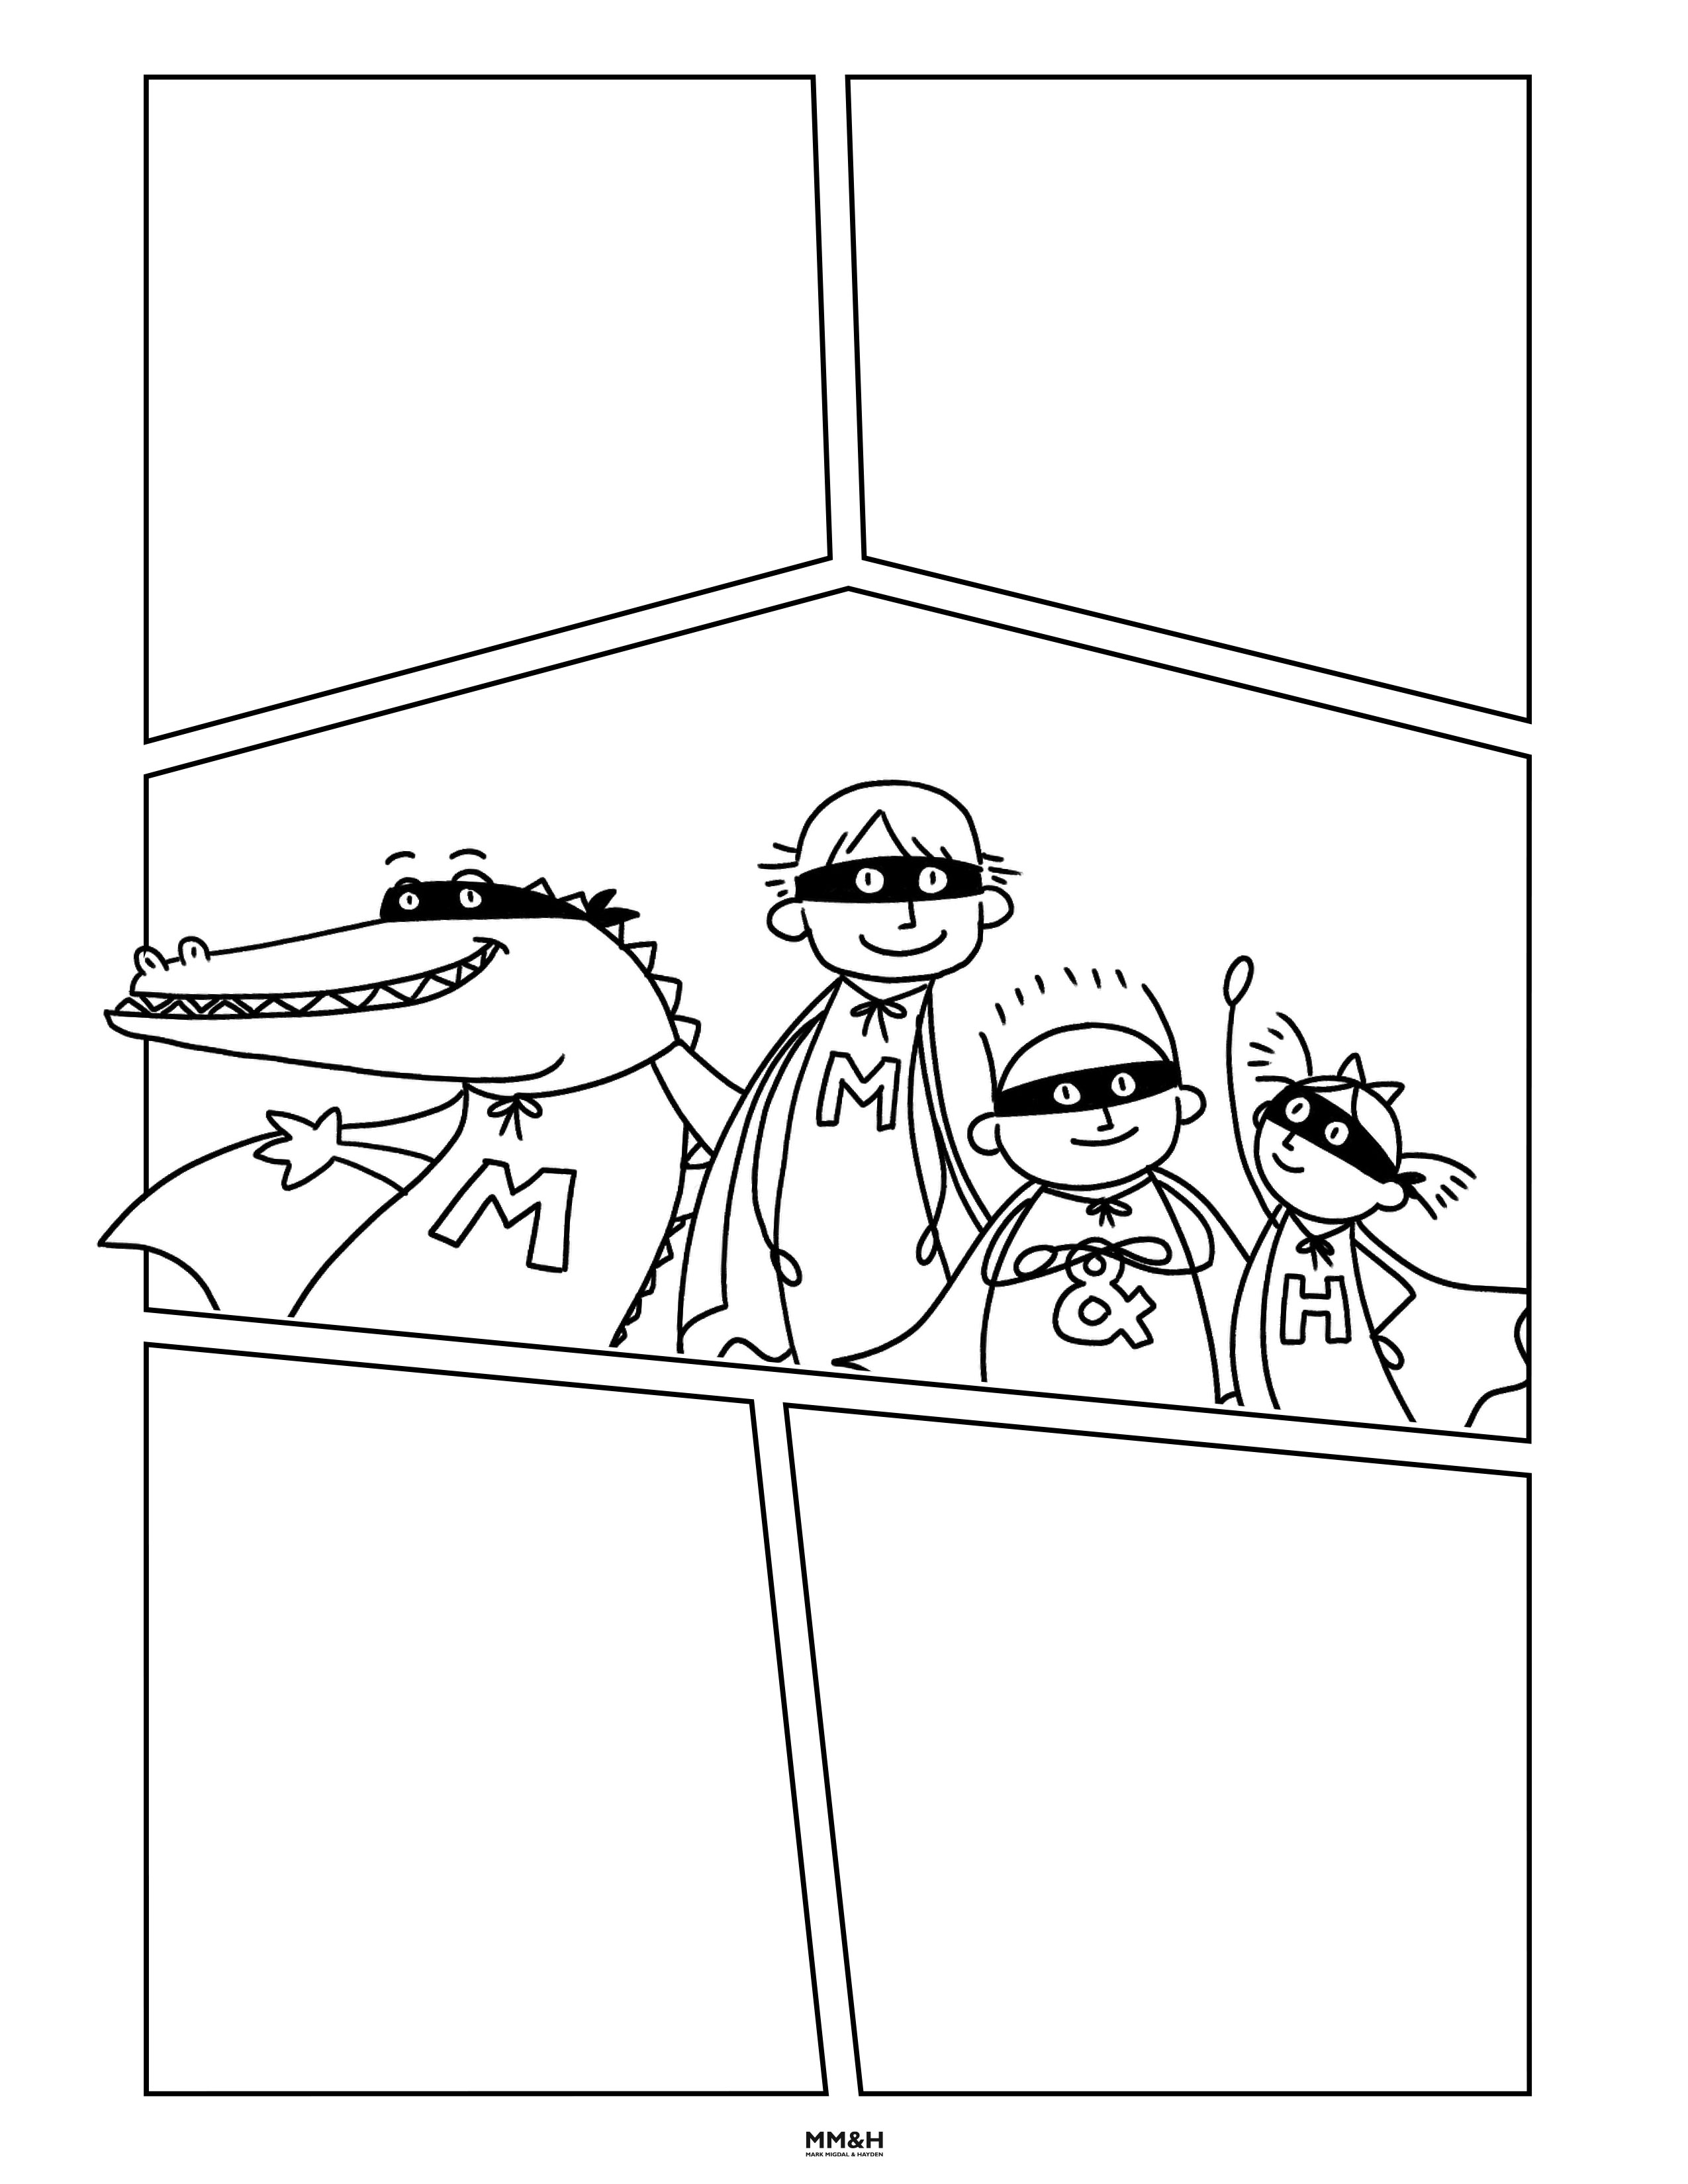 Comic-challenge-page-9 download